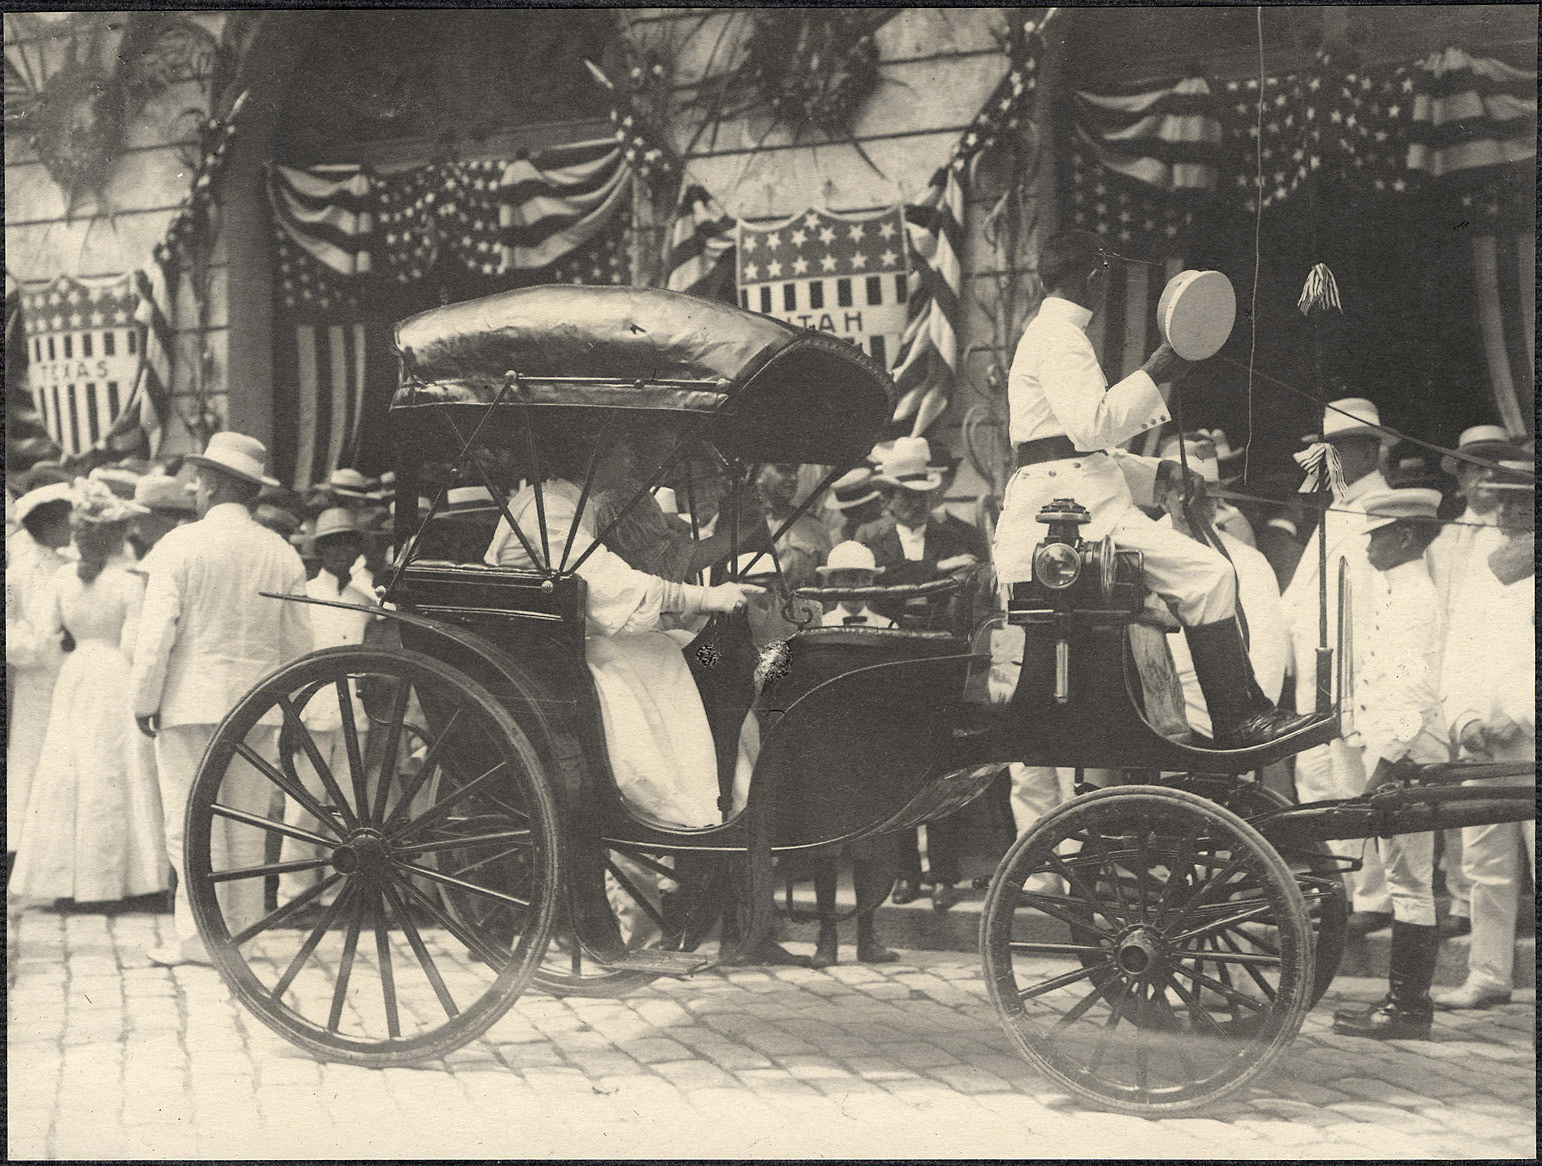 Manila: Carriage carrying Alice Roosevelt in front of the Ayuntamiento de Manila draped with American flags